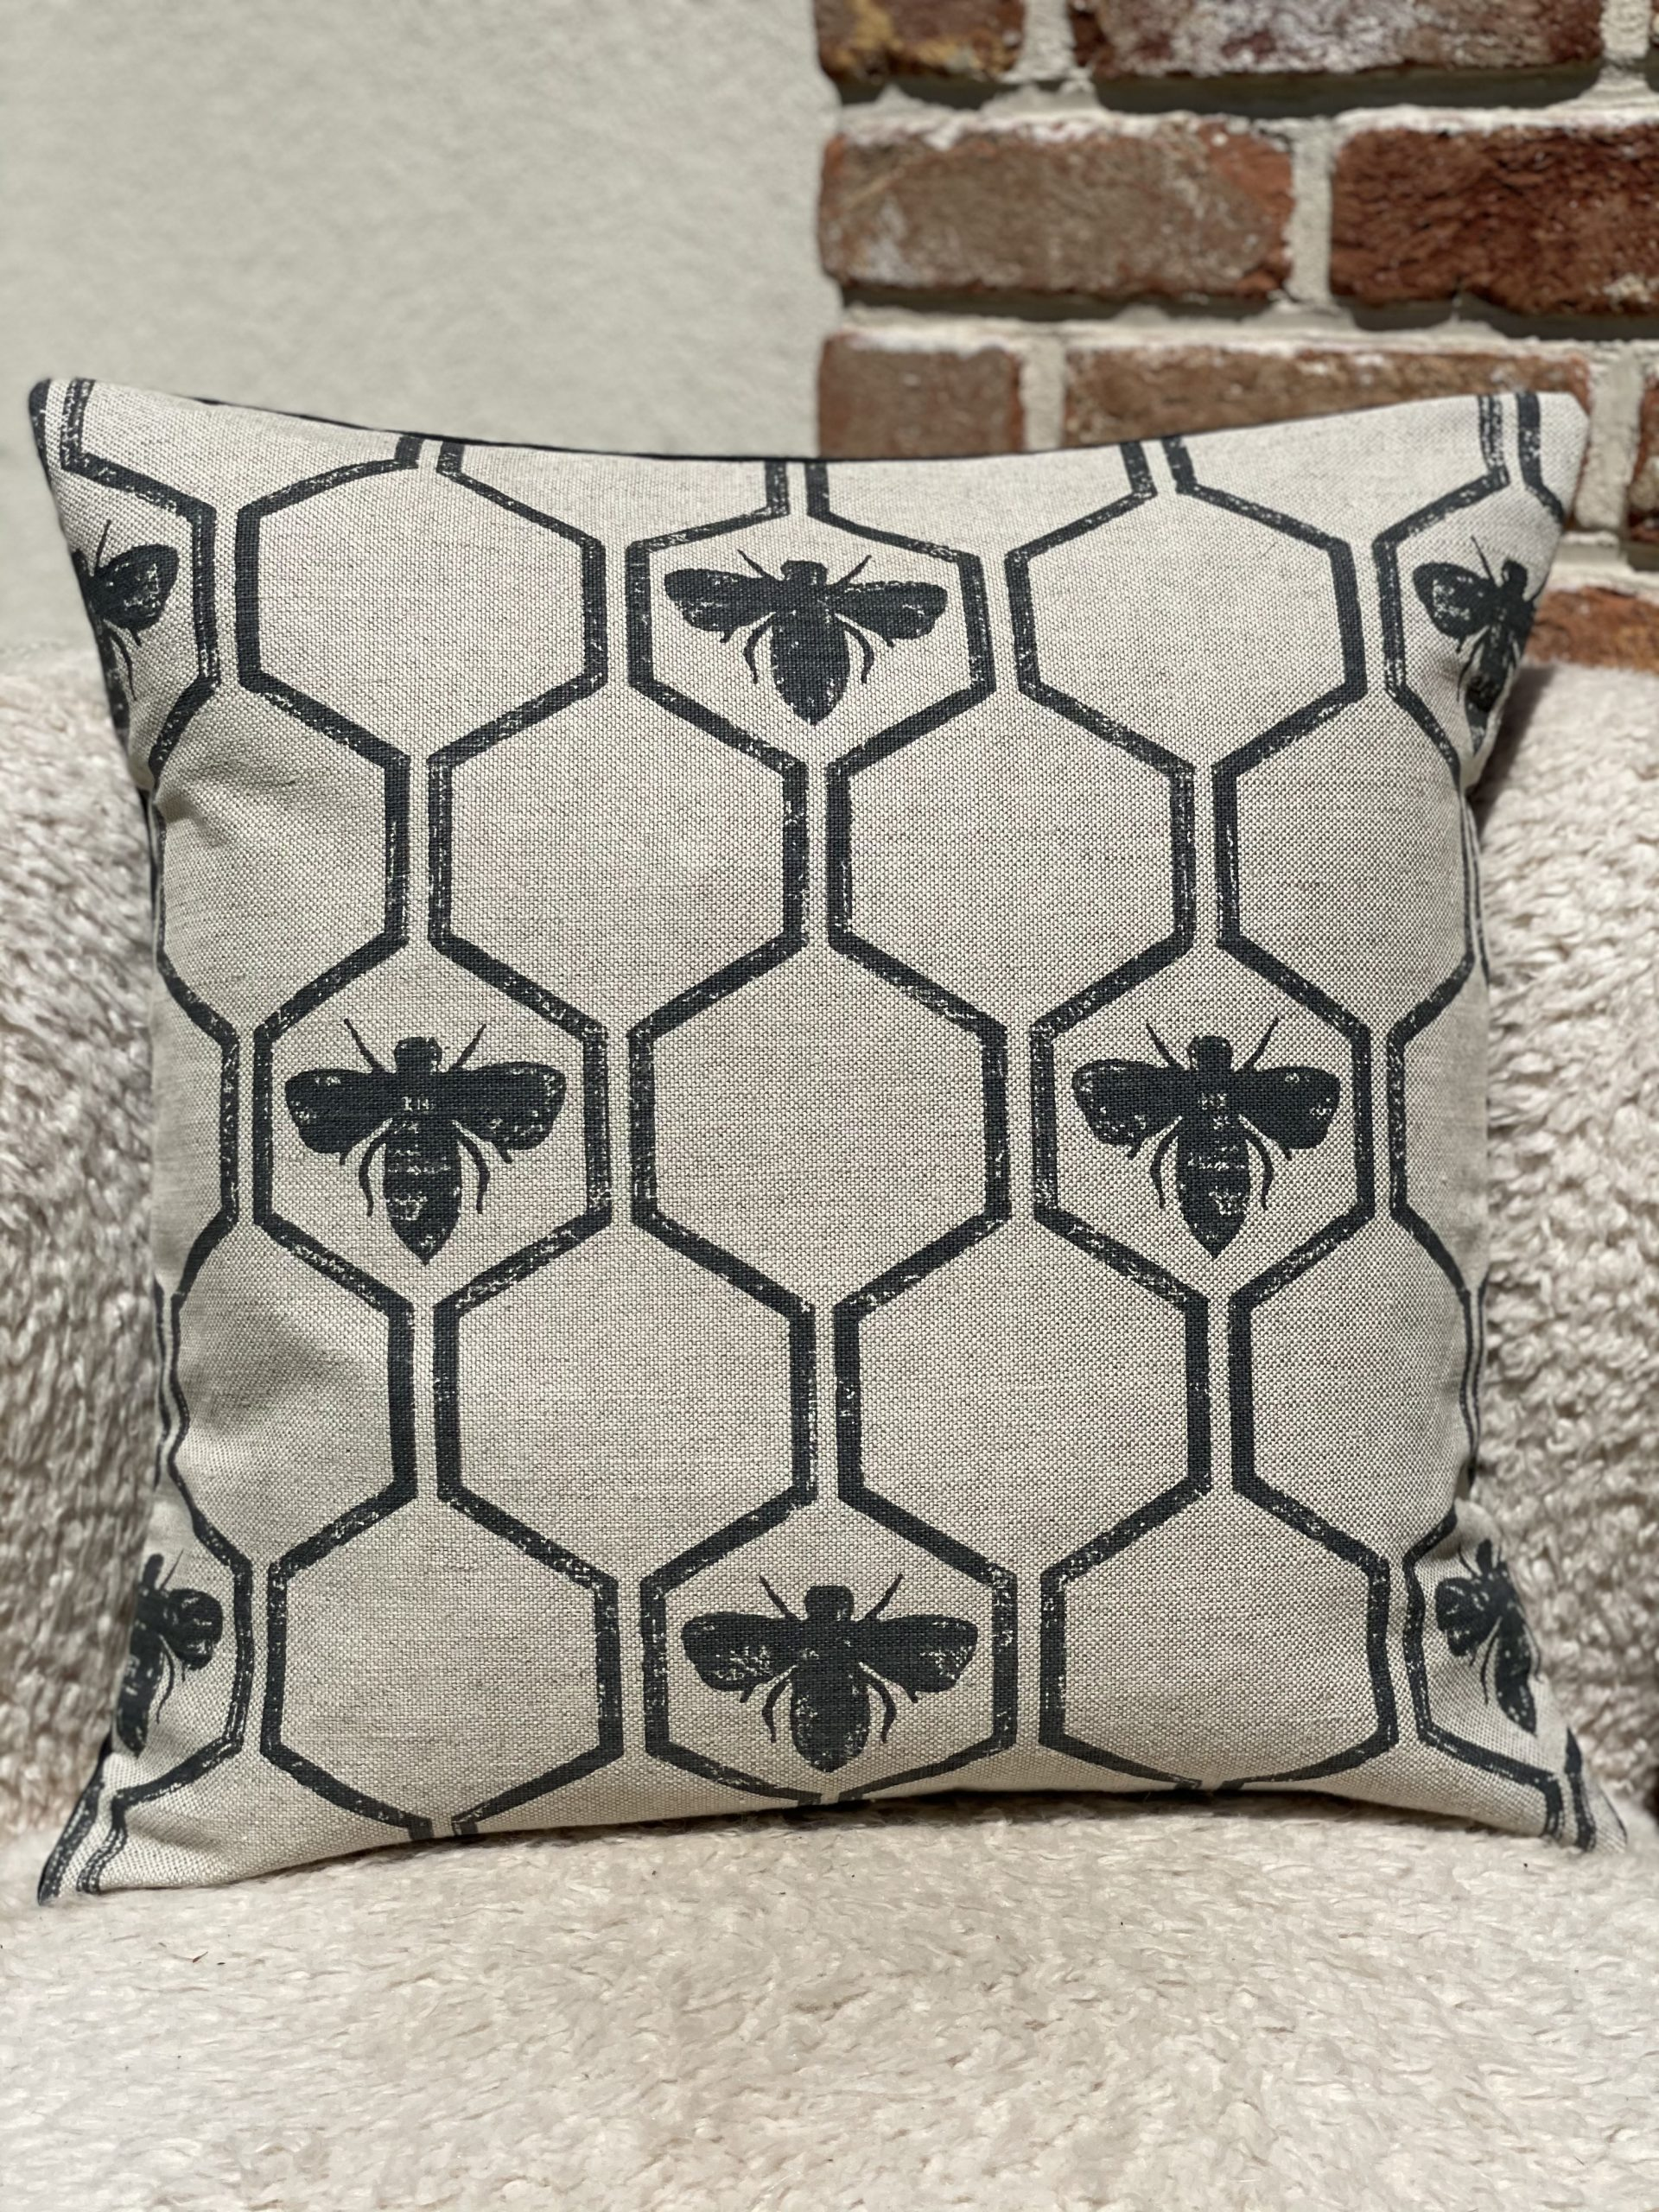 Honey-Comb-Natural-cotton-and-linen-with-Smokey-Blue-bee-and-honey-comb-design-with-smokey-blue-velvet-reverse-Luxury-Sustainable-cushion-Oath-Home-1--scaled